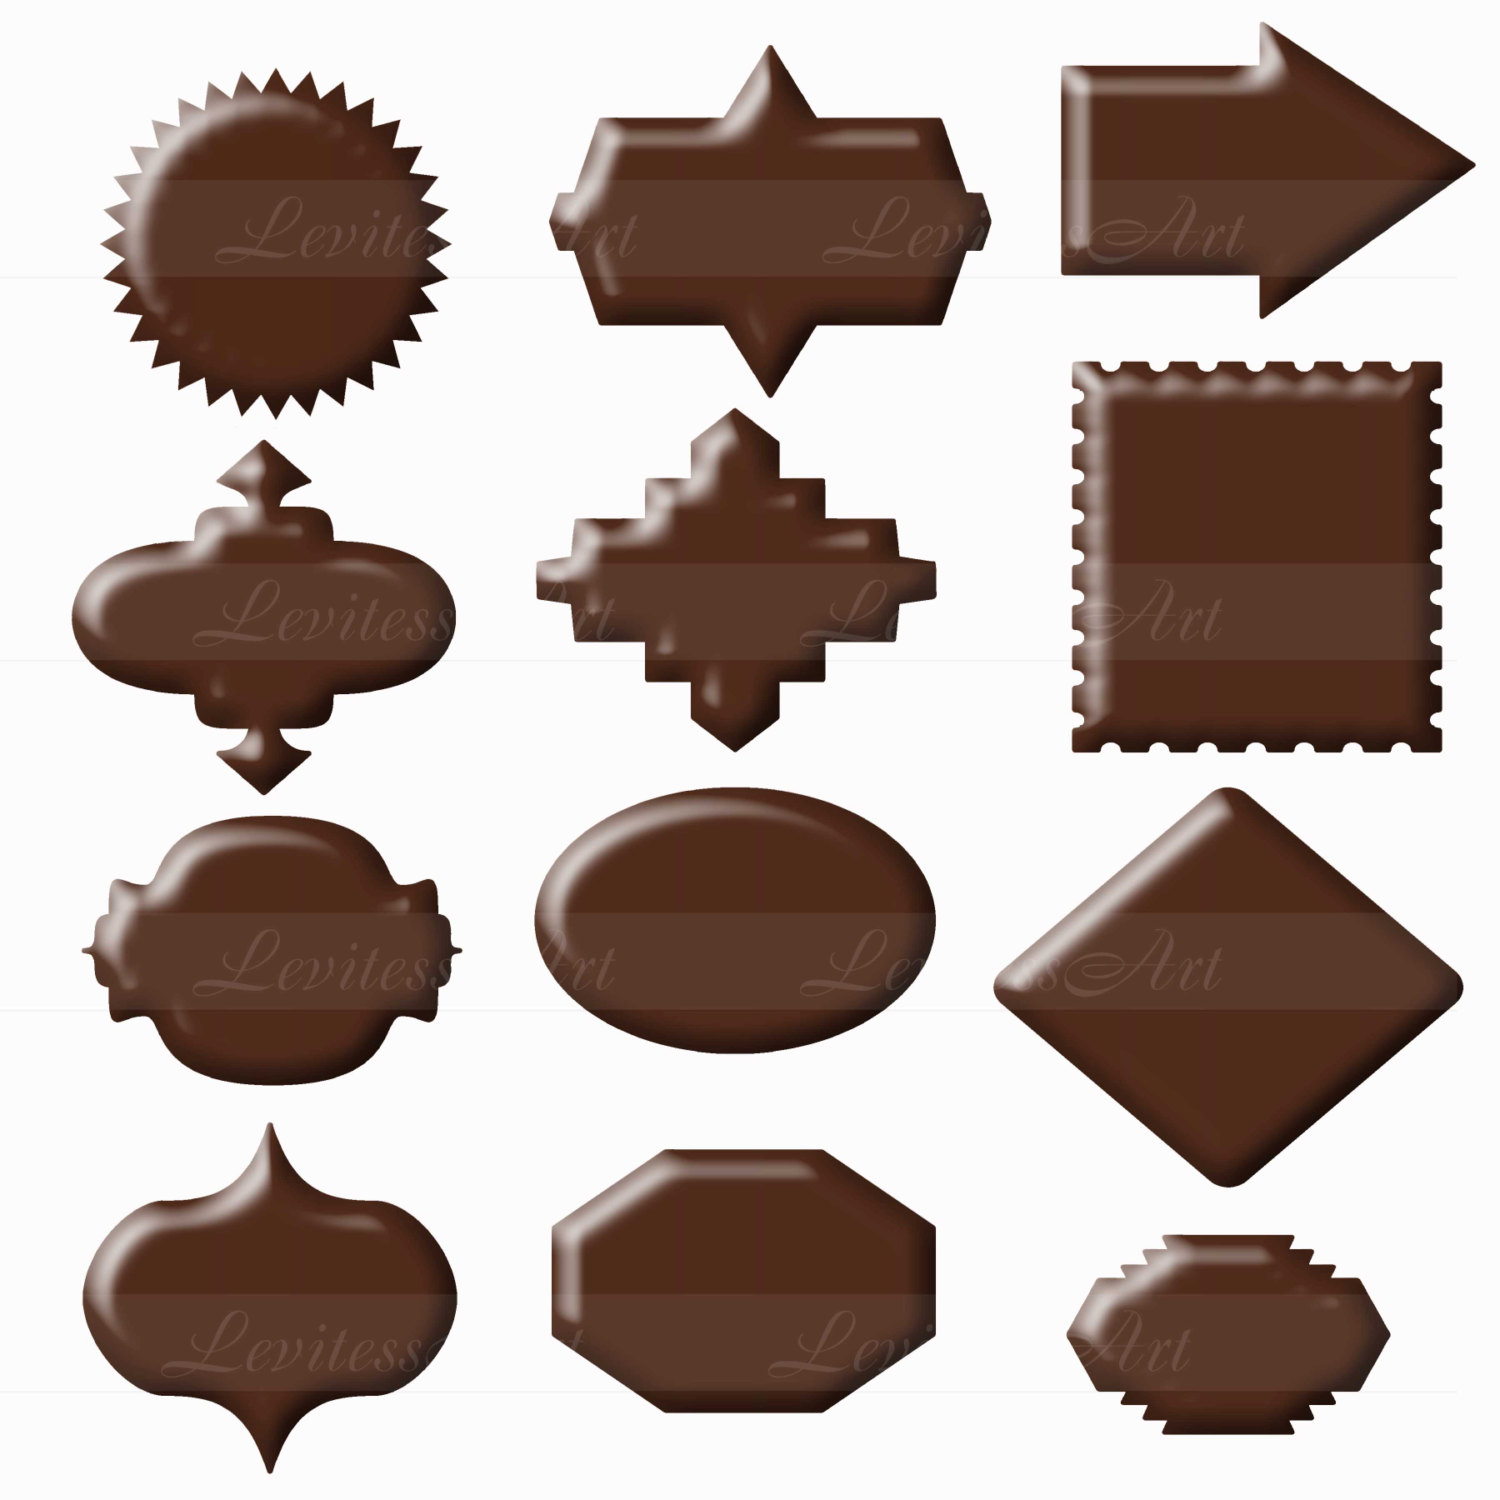 Frame clipart chocolate Clipart Chocolate digital Chocolate Chocolate